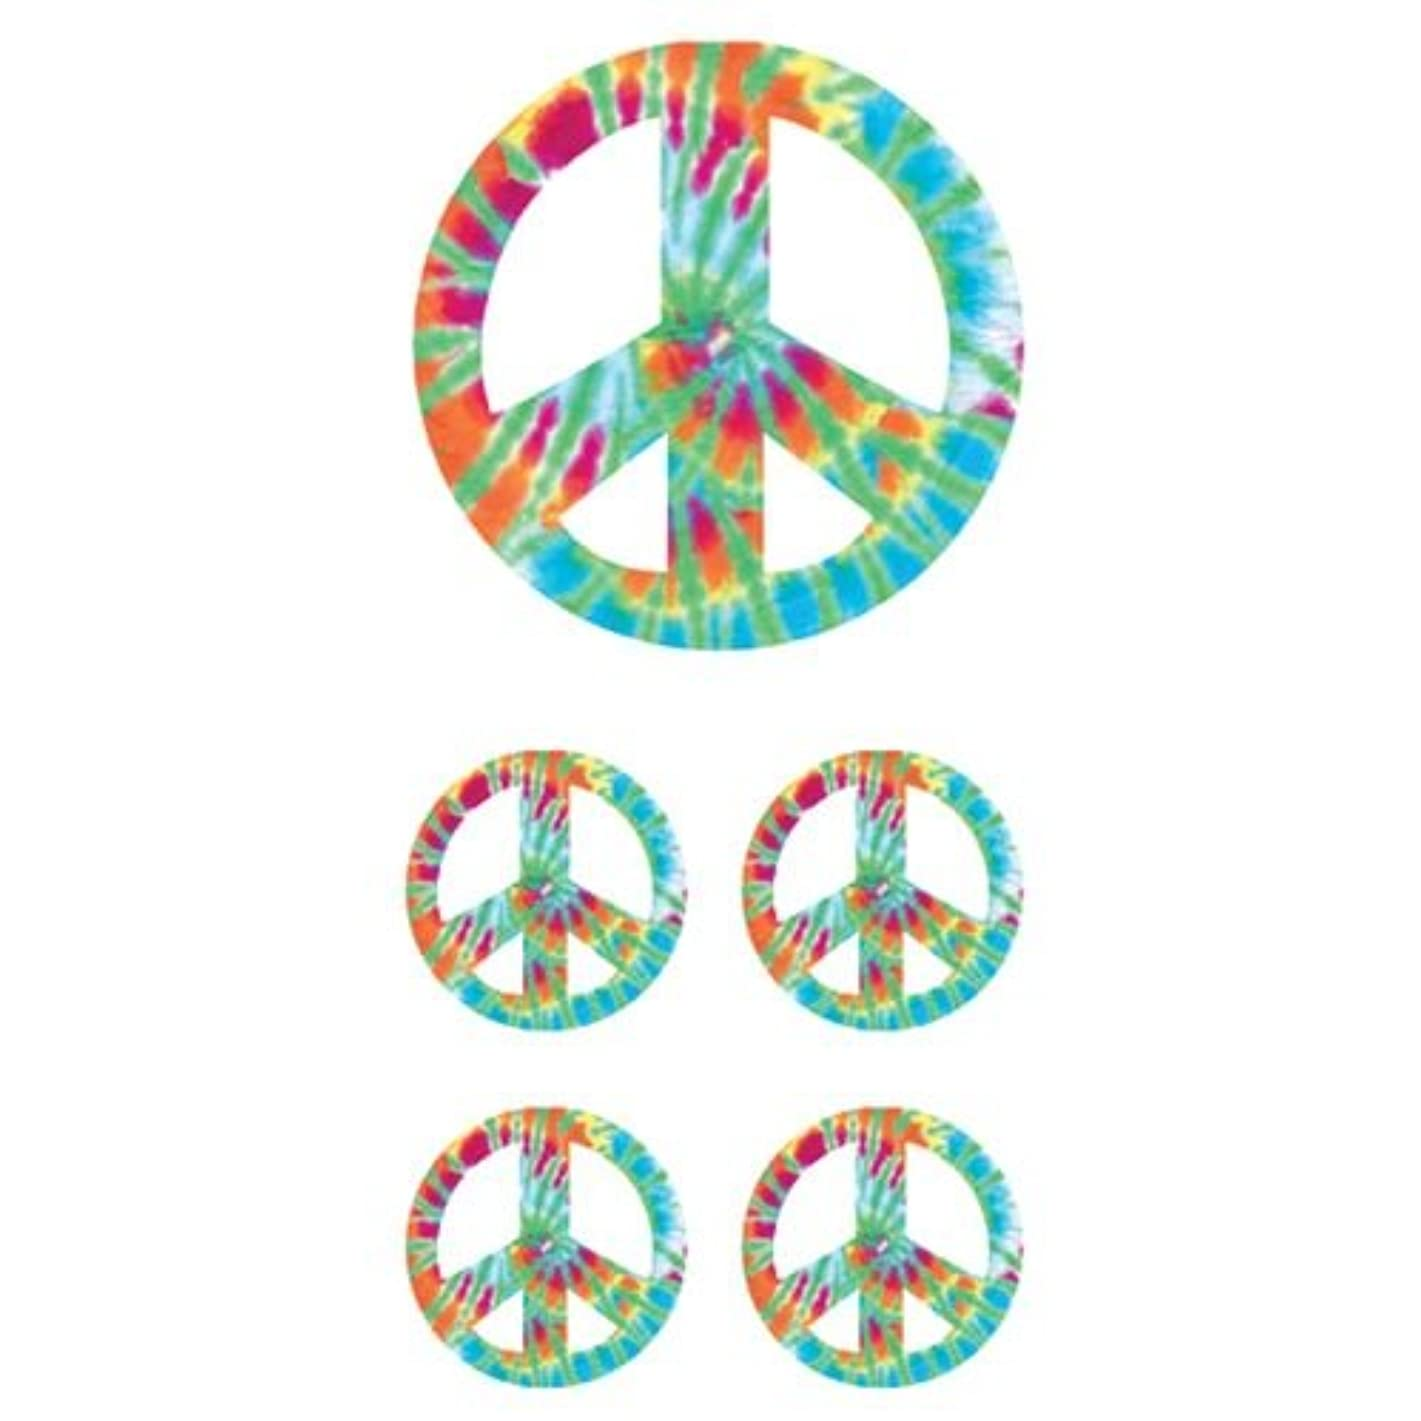 Paper House Productions ST-2210E Photo Real Stickypix Stickers, 2-Inch by 4-Inch, Peace Sign - Tie Dye (6-Pack)